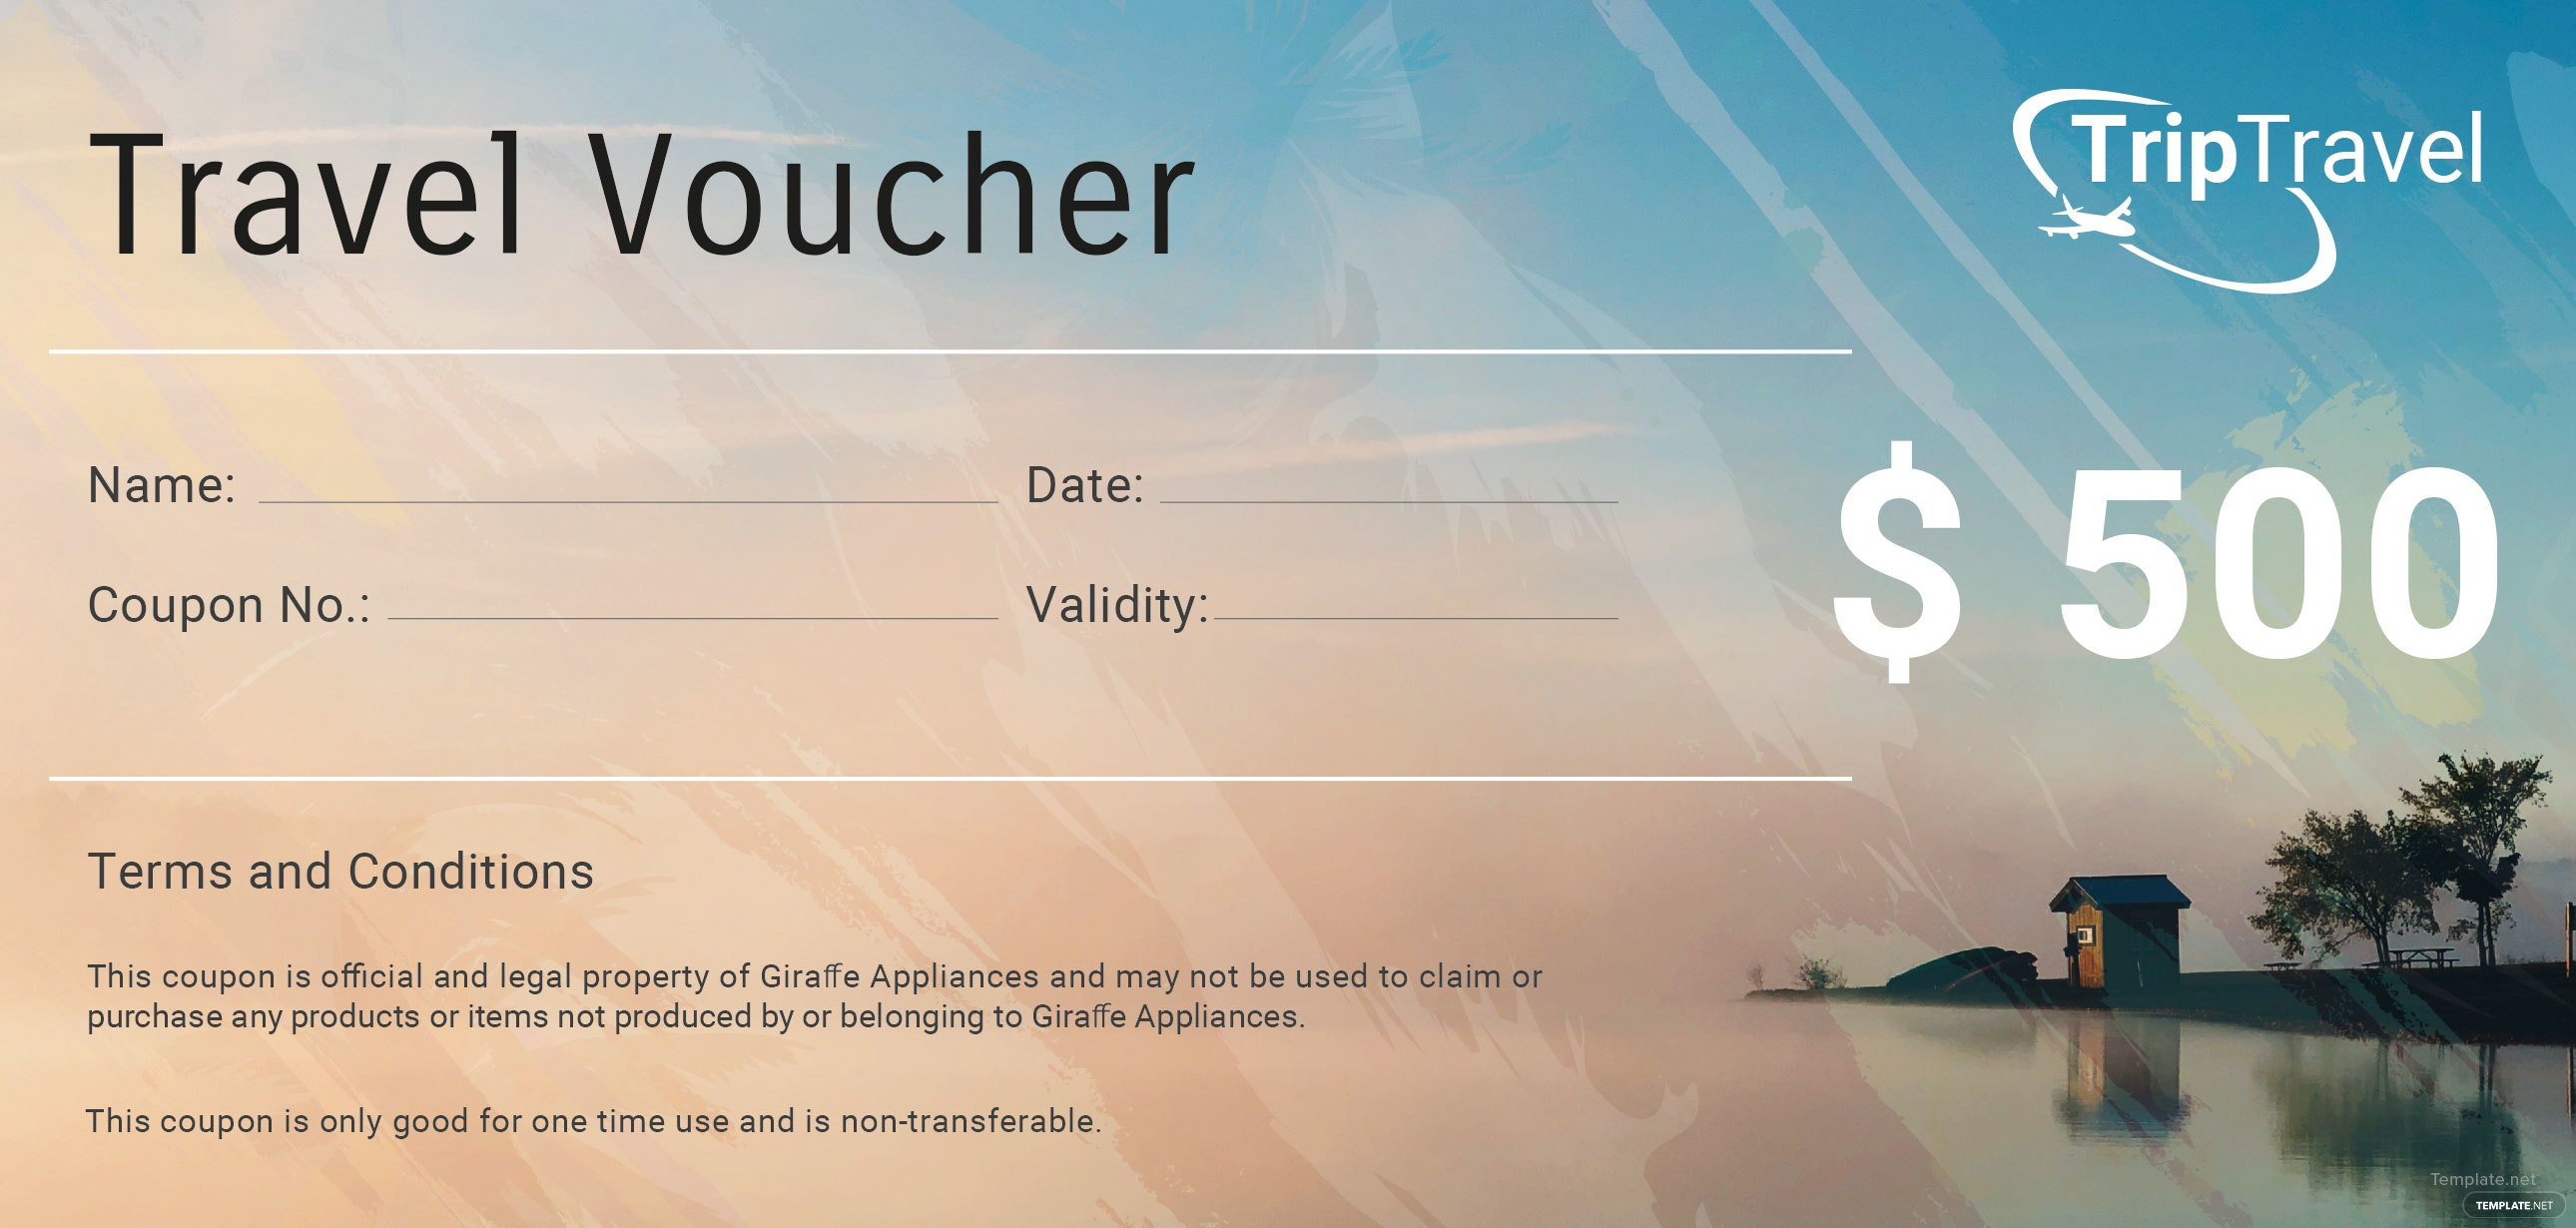 Sample gift voucher template datariouruguay blank gift certificate template word printable calendar yadclub Image collections